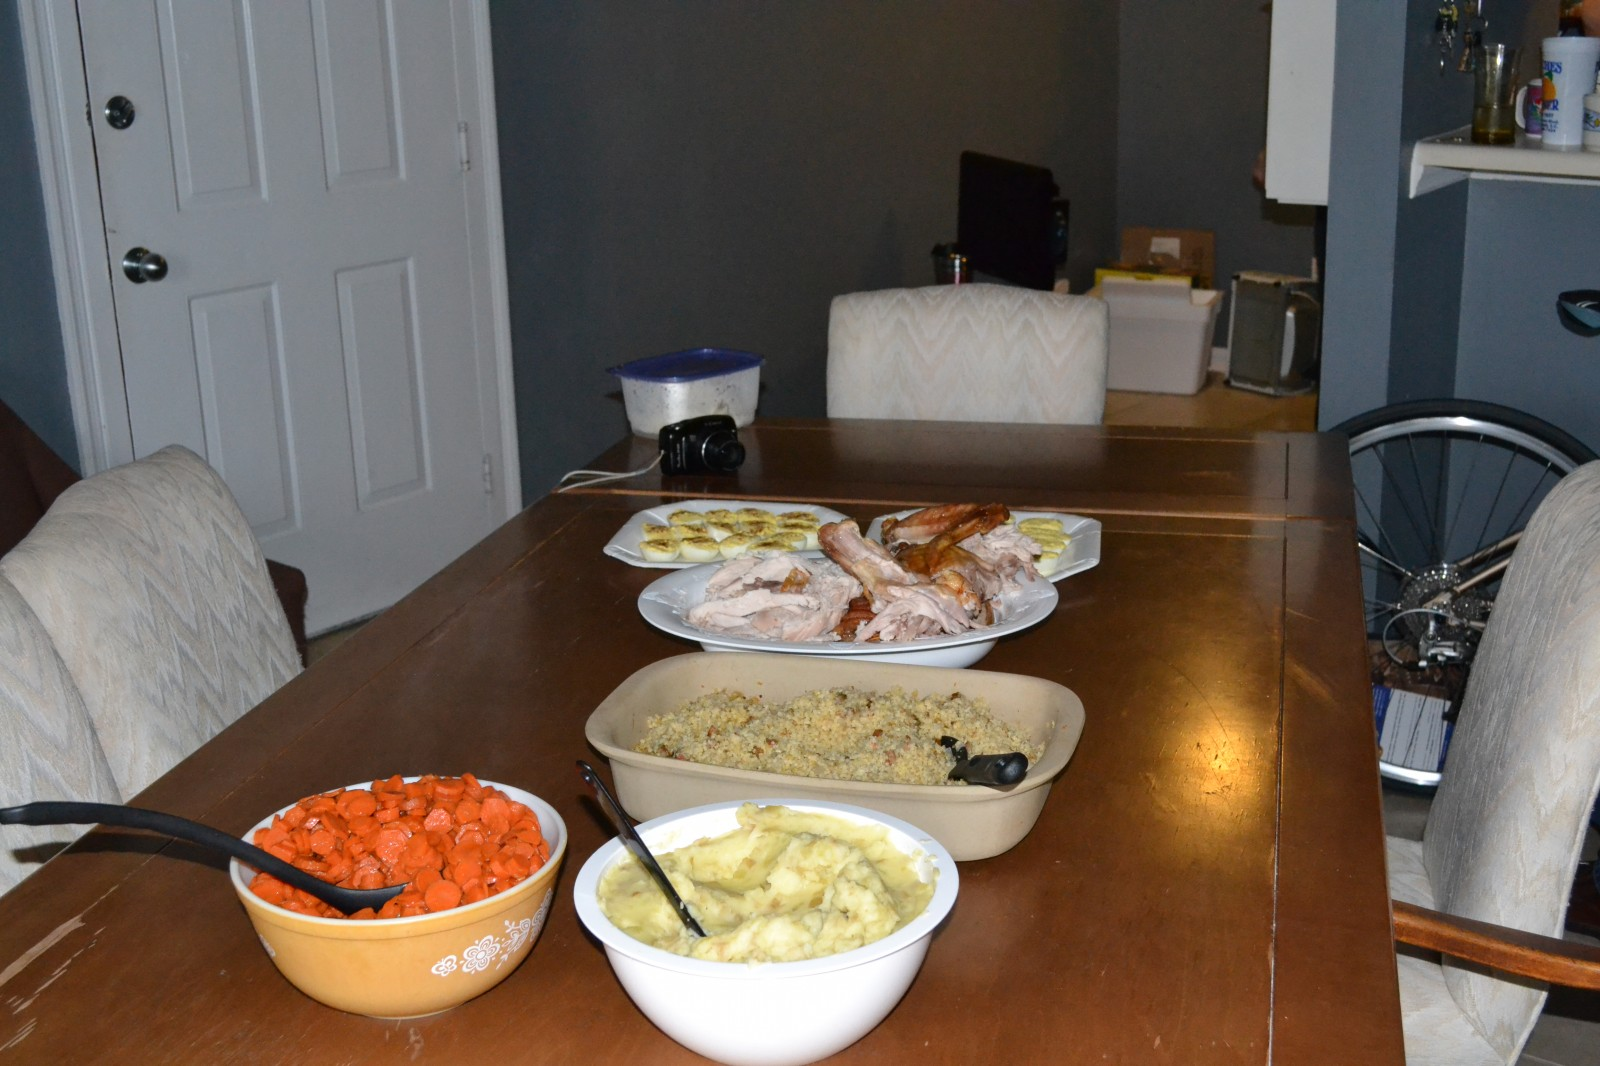 Carrots, mashed potatoes, turkey, dressing, and deviled eggs.